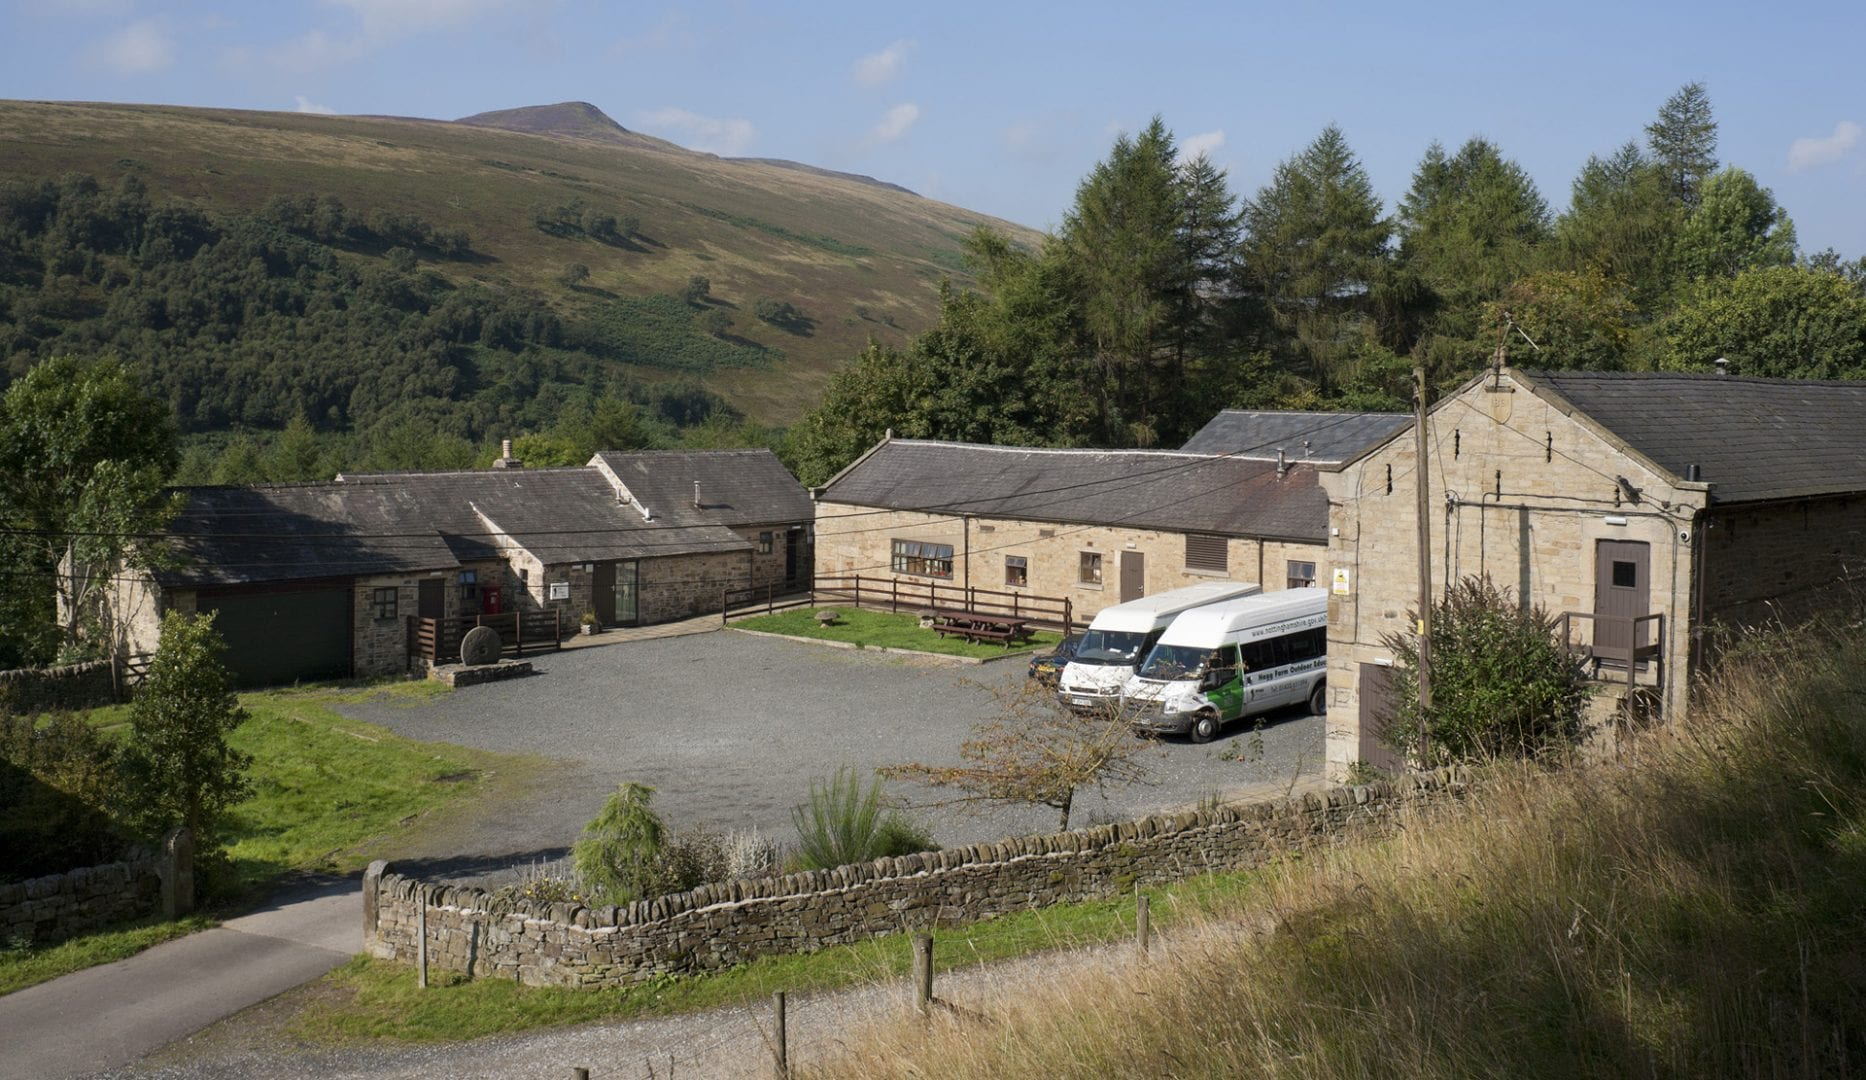 Outdoor Education Centre in the Peak District